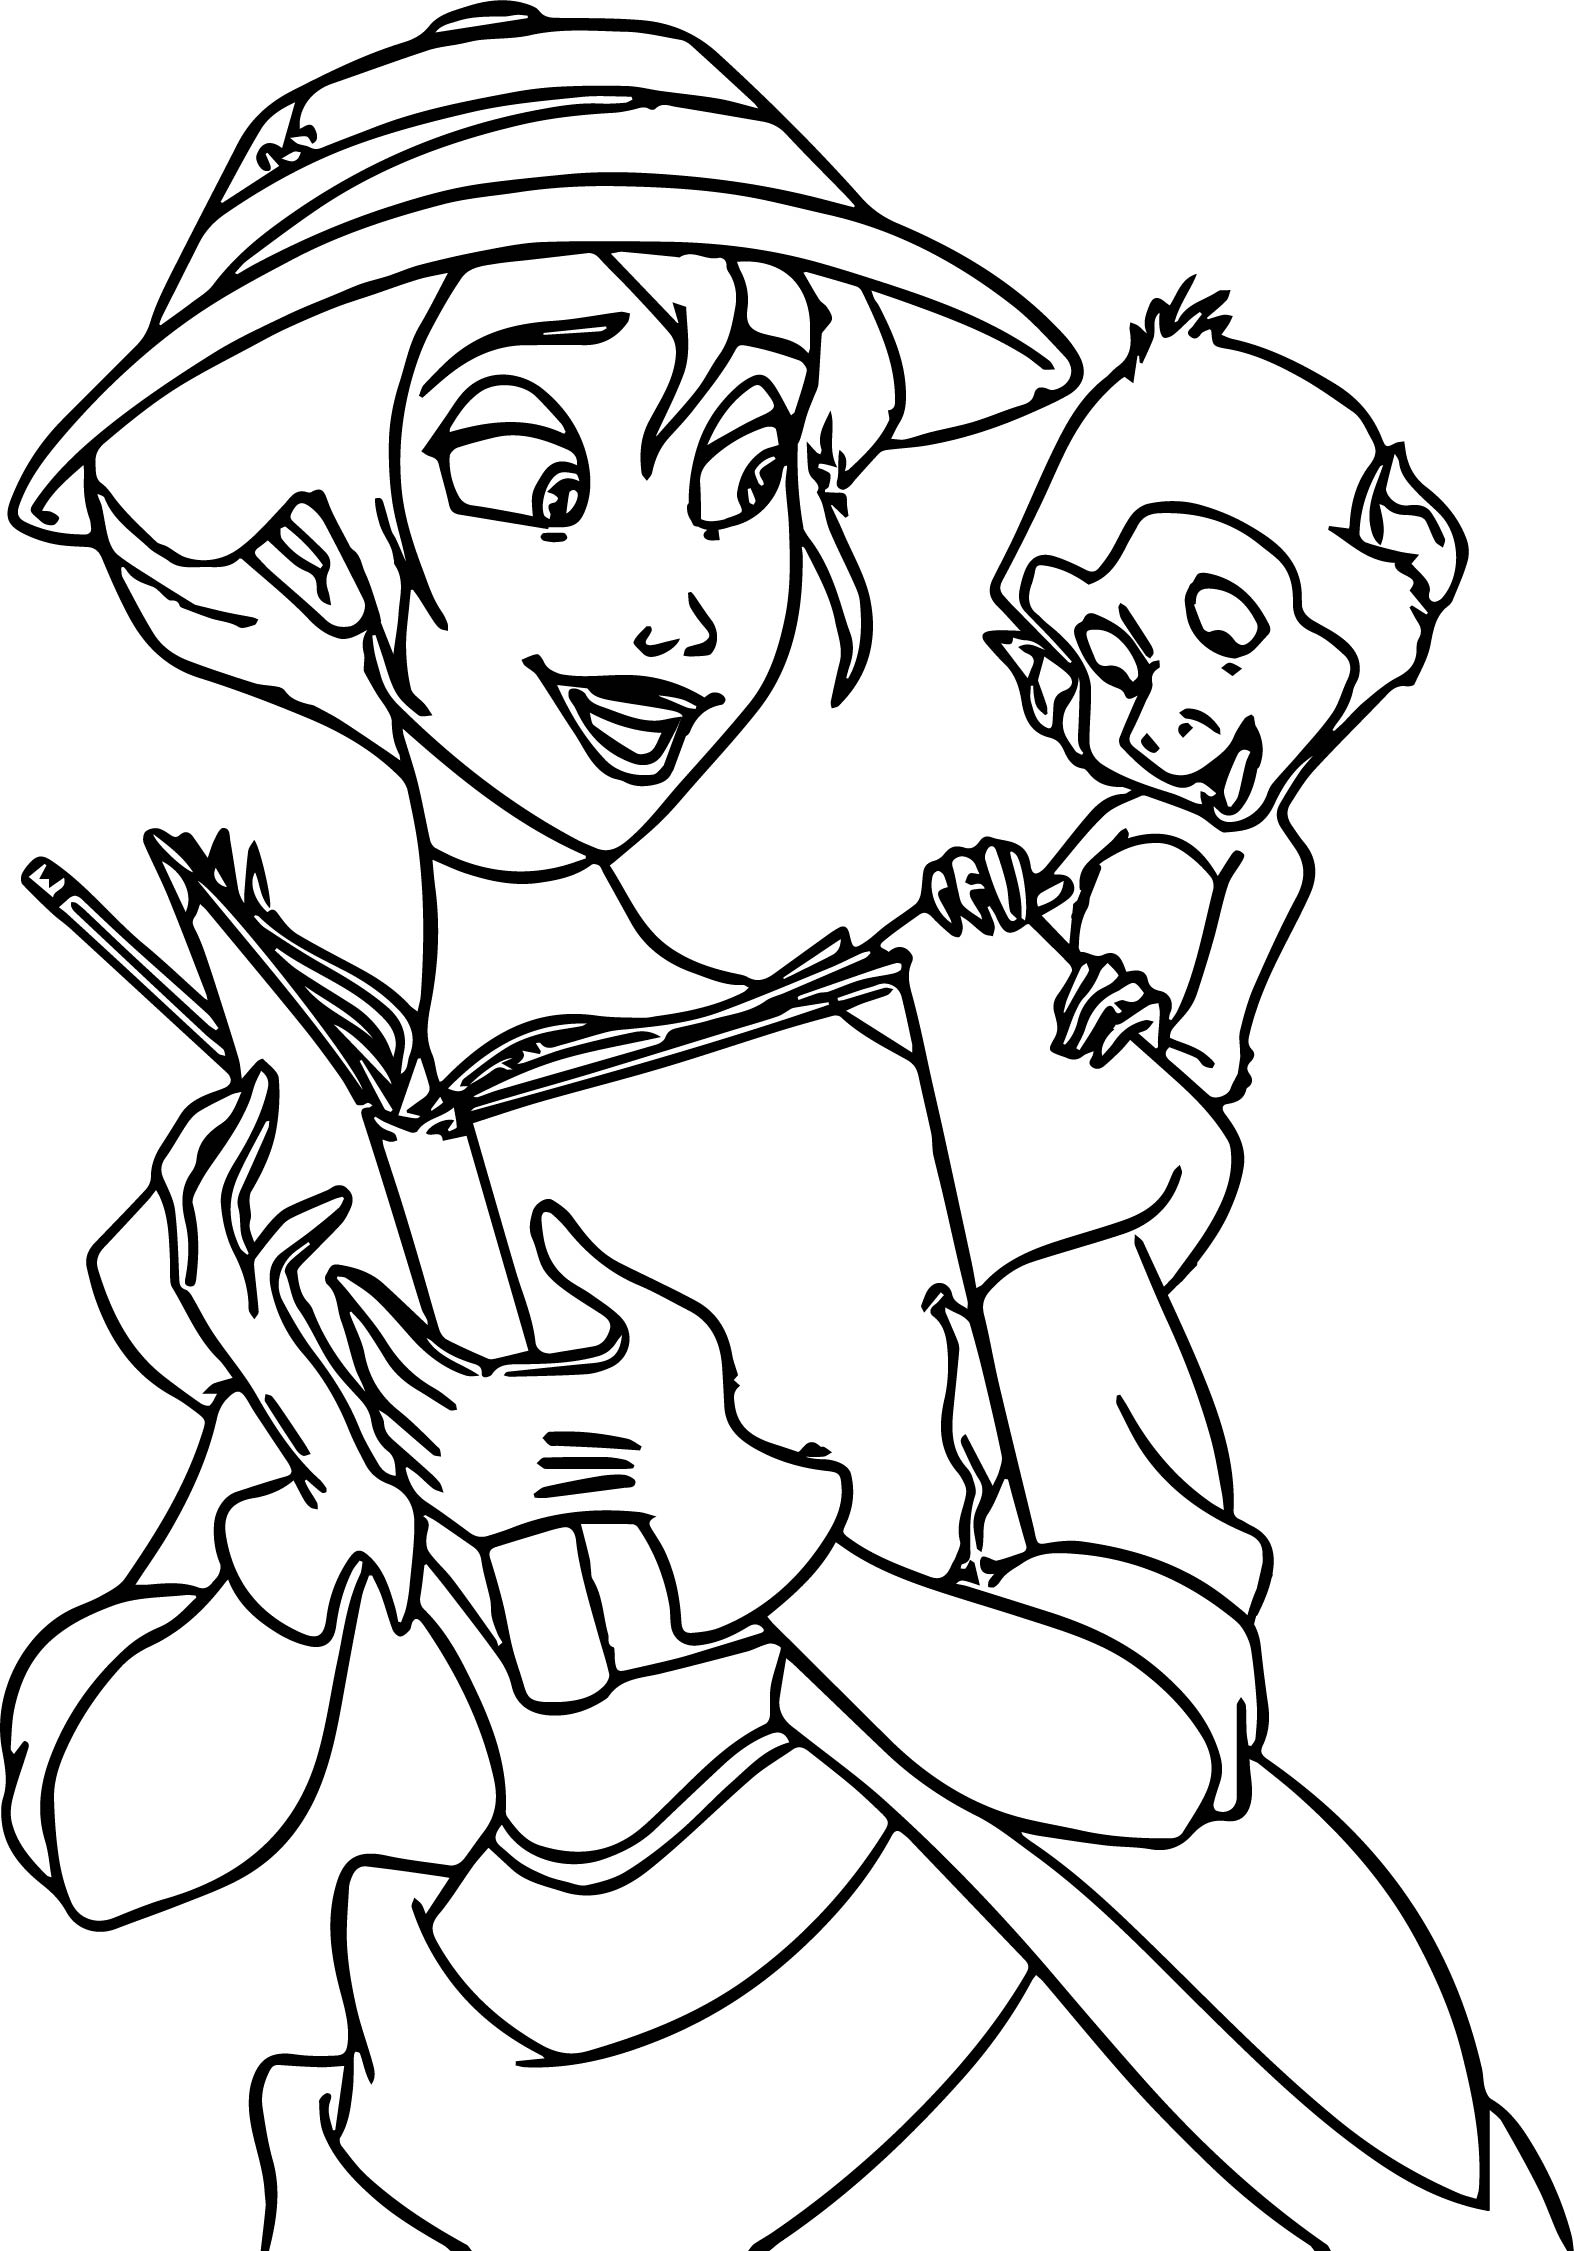 Jane Monkey Reading Book Coloring Page